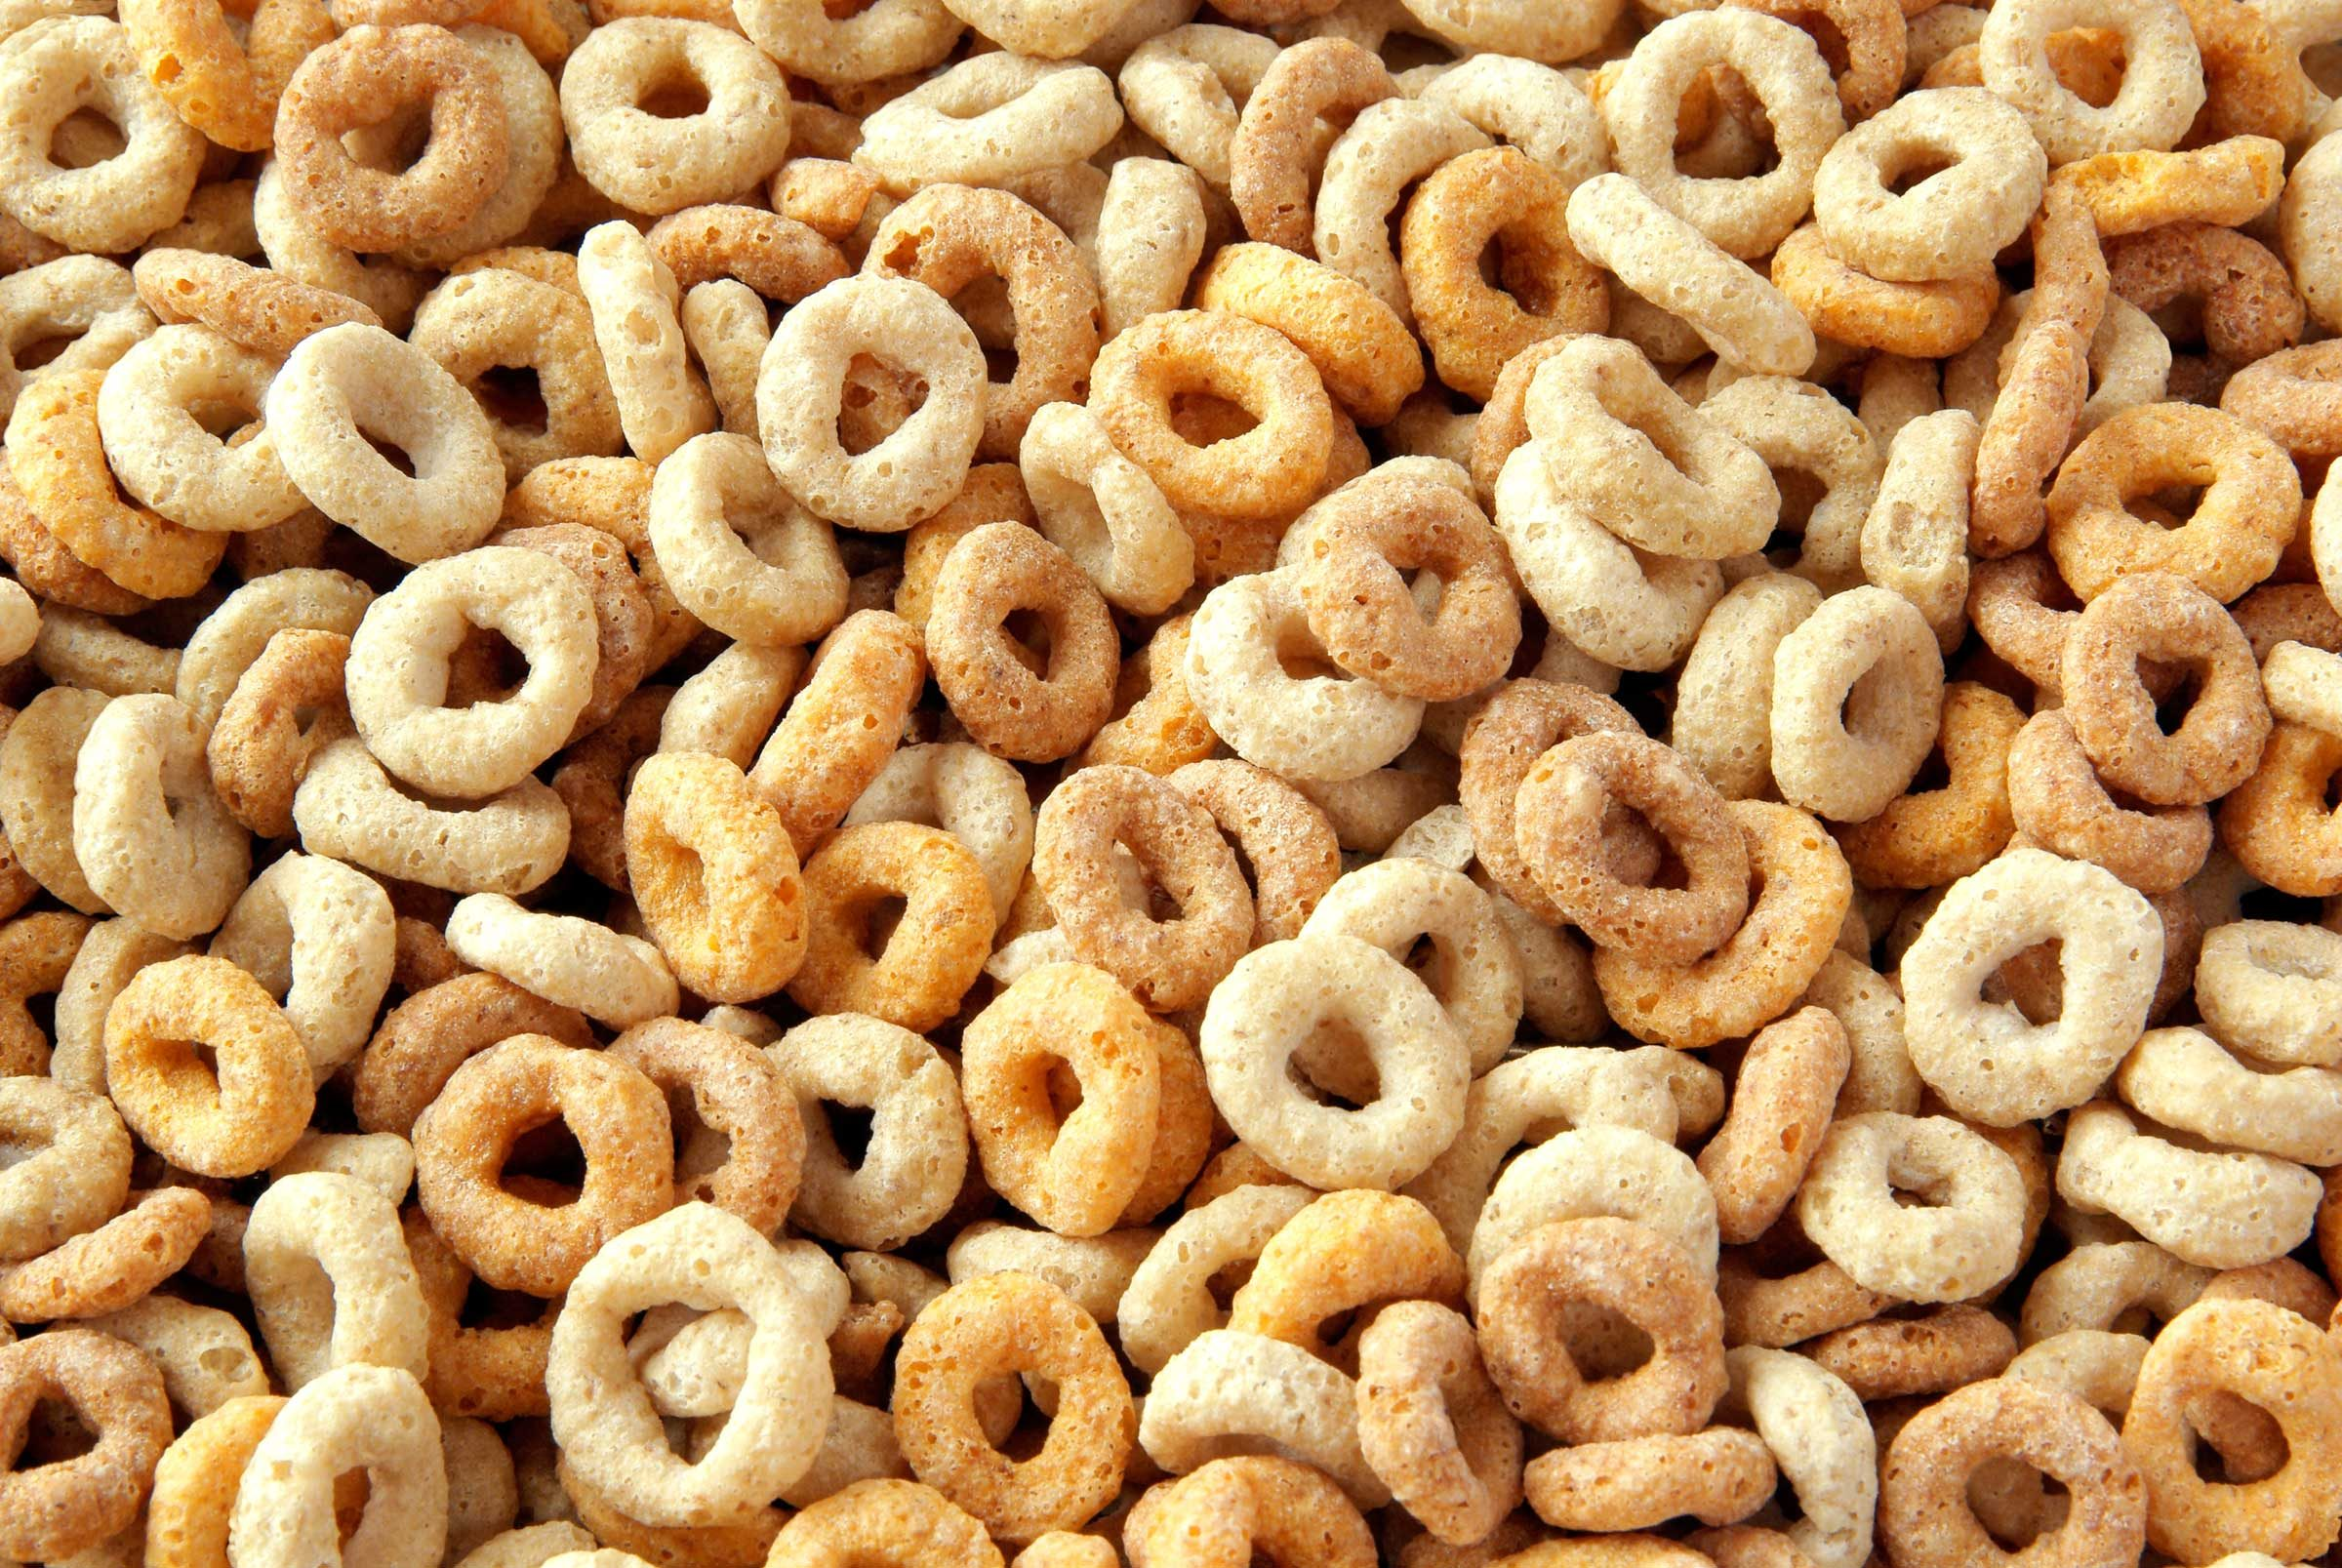 Why no prizes in cereal anymore any more